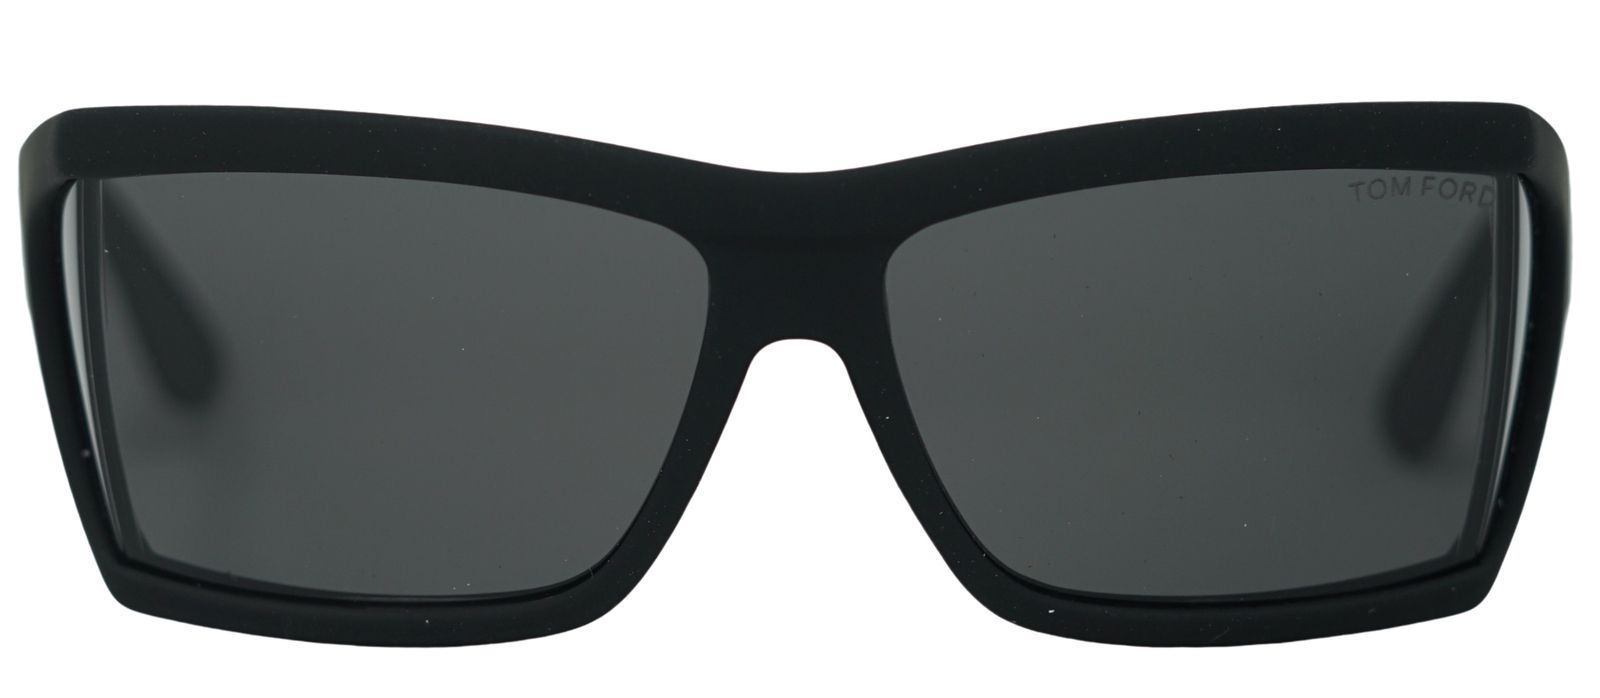 Tom Ford Sasha Sunglasses FT0401 02A